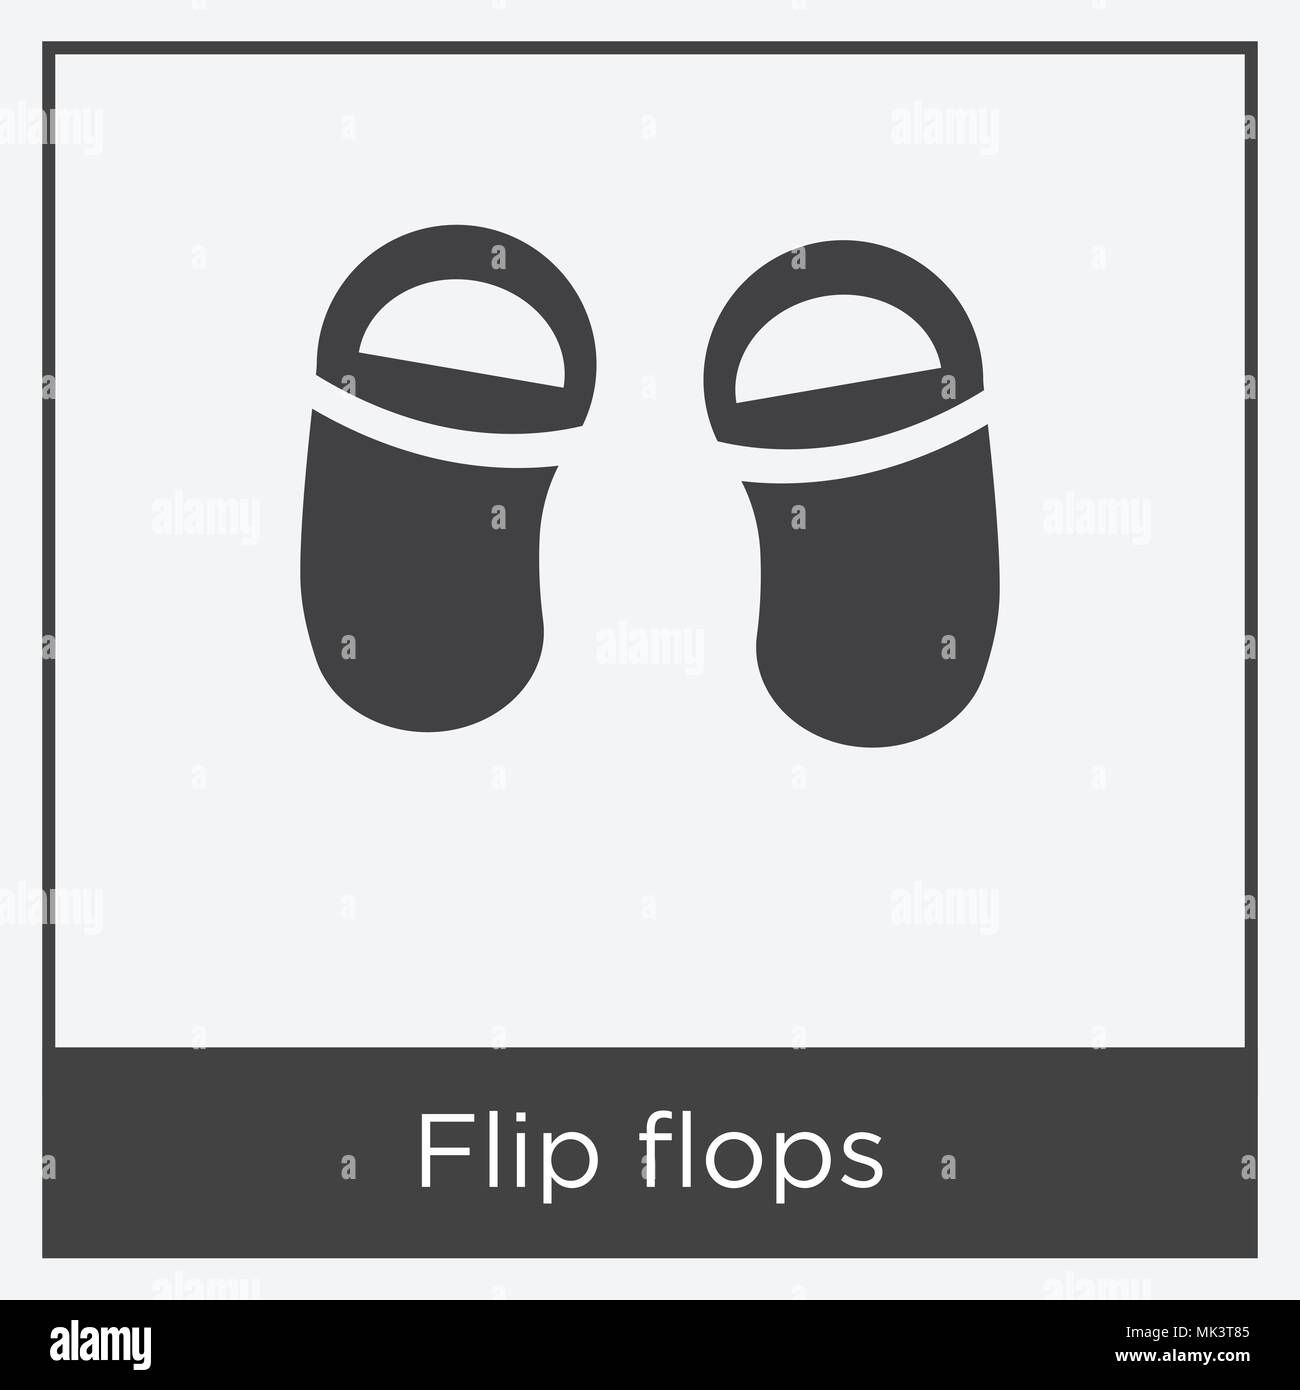 Flip flops icon isolated on white background with gray frame, sign ...